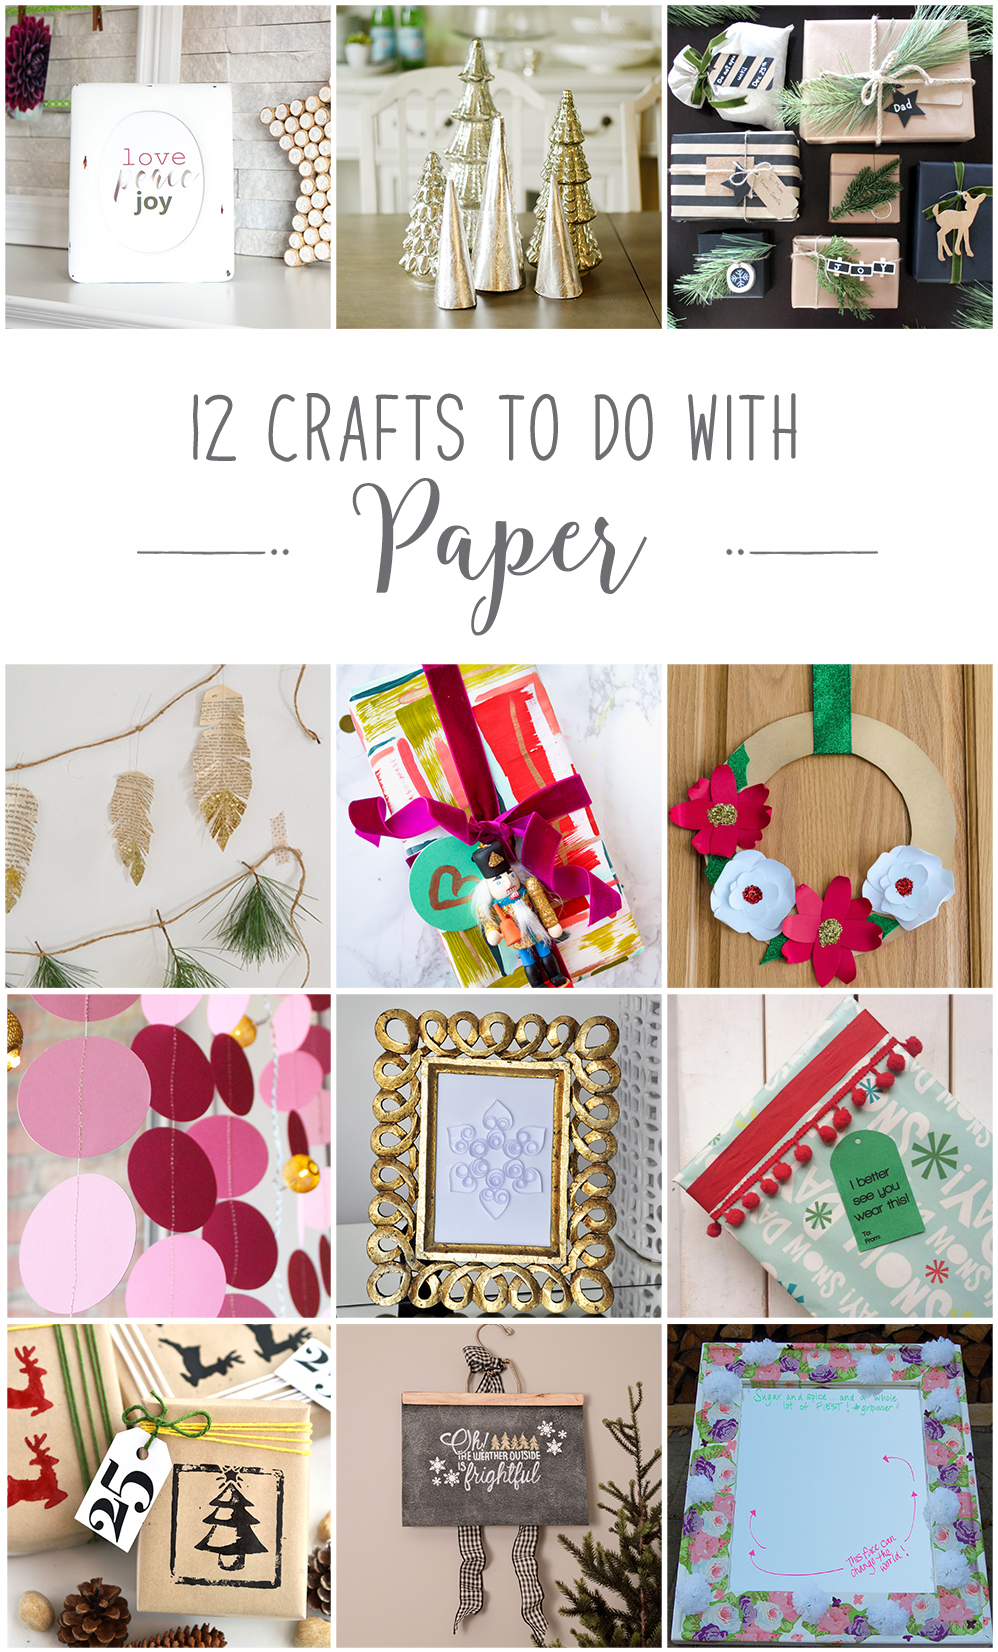 12 fun and simple Christmas crafts to make with paper including free printable art | Easy holiday DIY ideas using paper